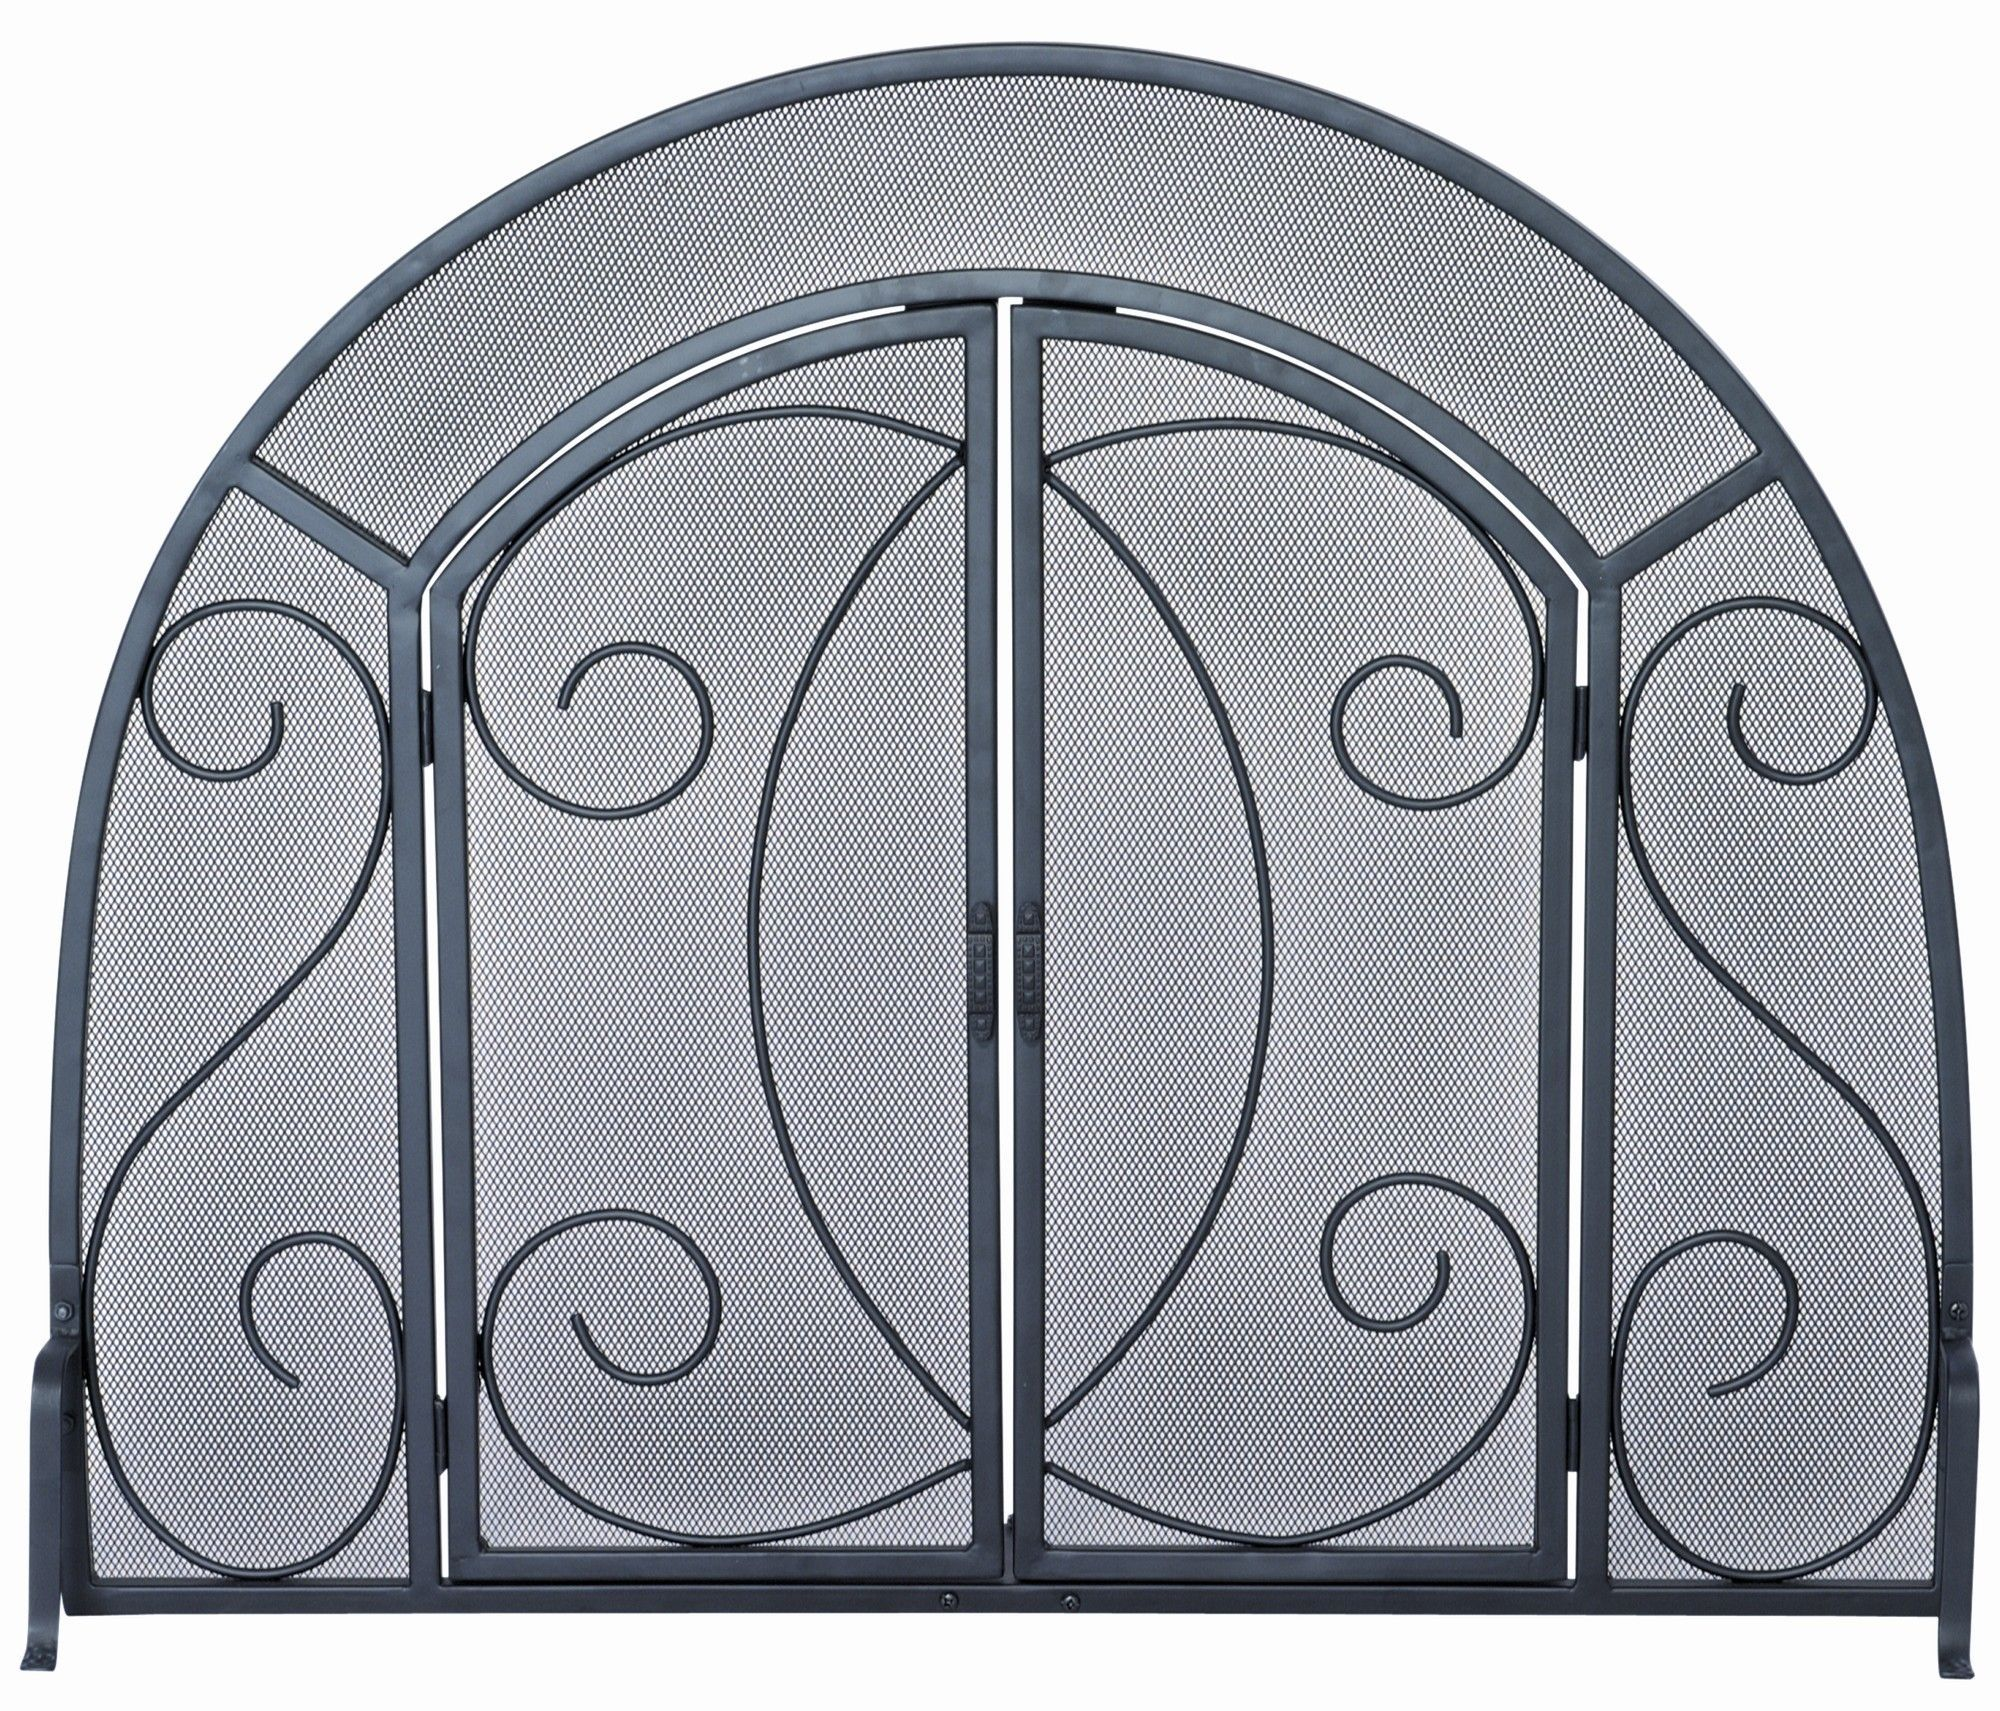 Wrought Iron Ornate Fireplace Screen Fireplace Screens Wrought